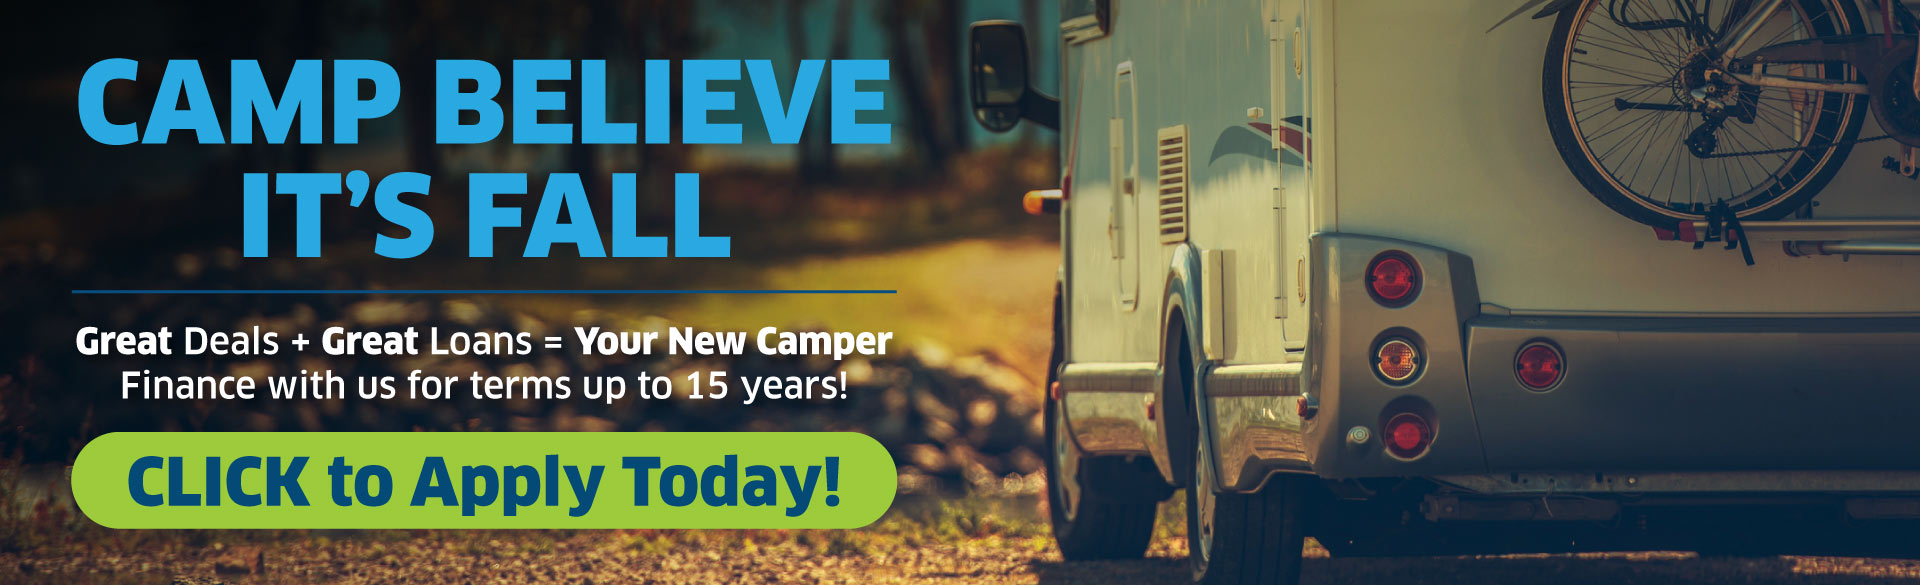 Camp Believe It's Fall! Finance with us for terms up to 15 years on a camper loan!